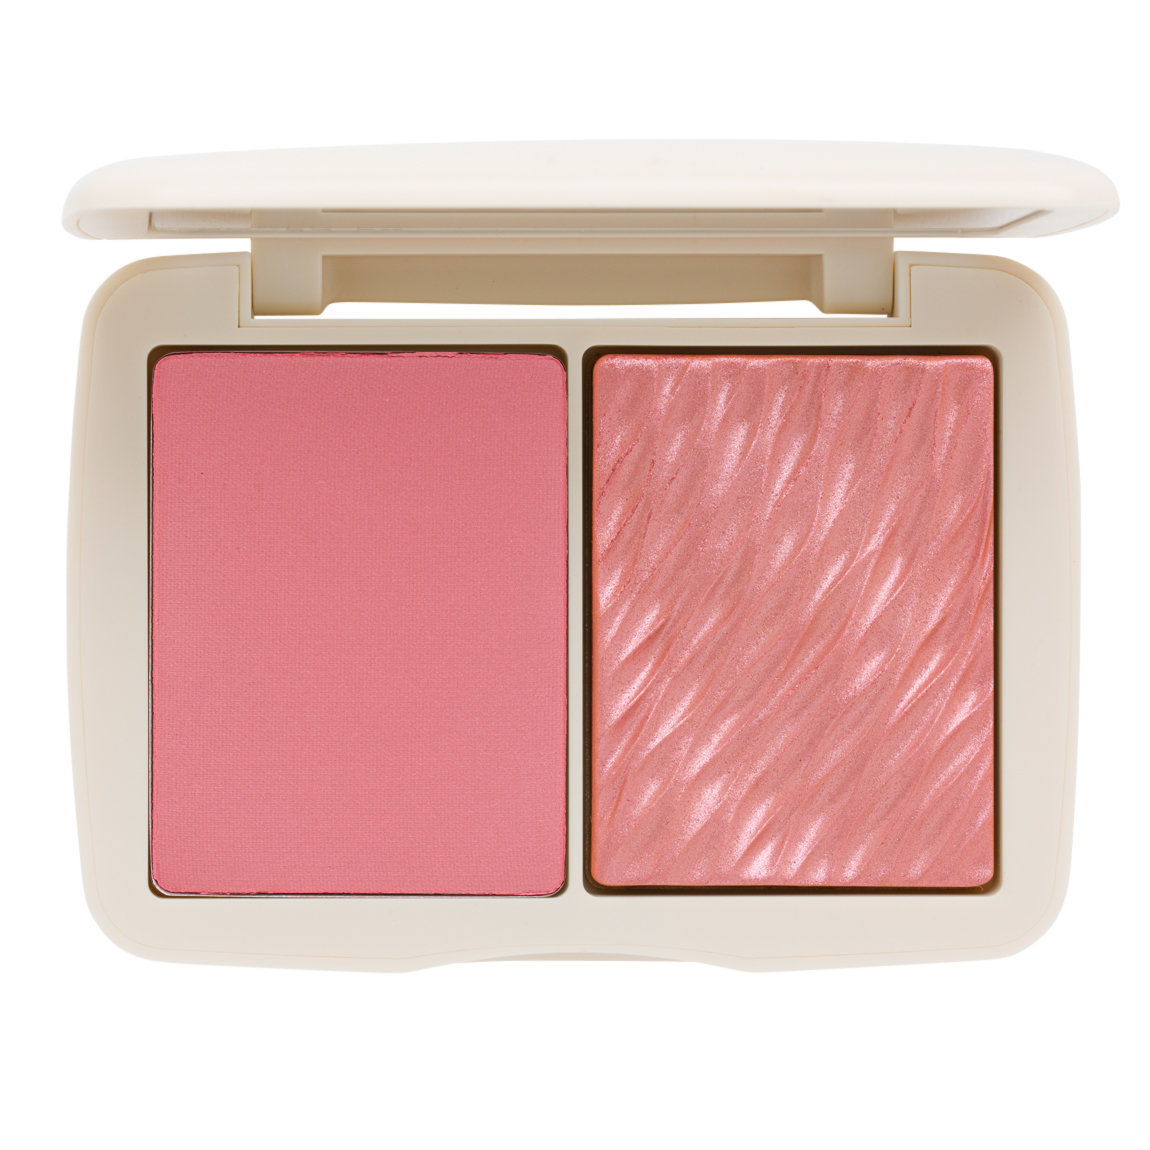 COVER | FX Monochromatic Blush Duo Mojave Mauve product smear.